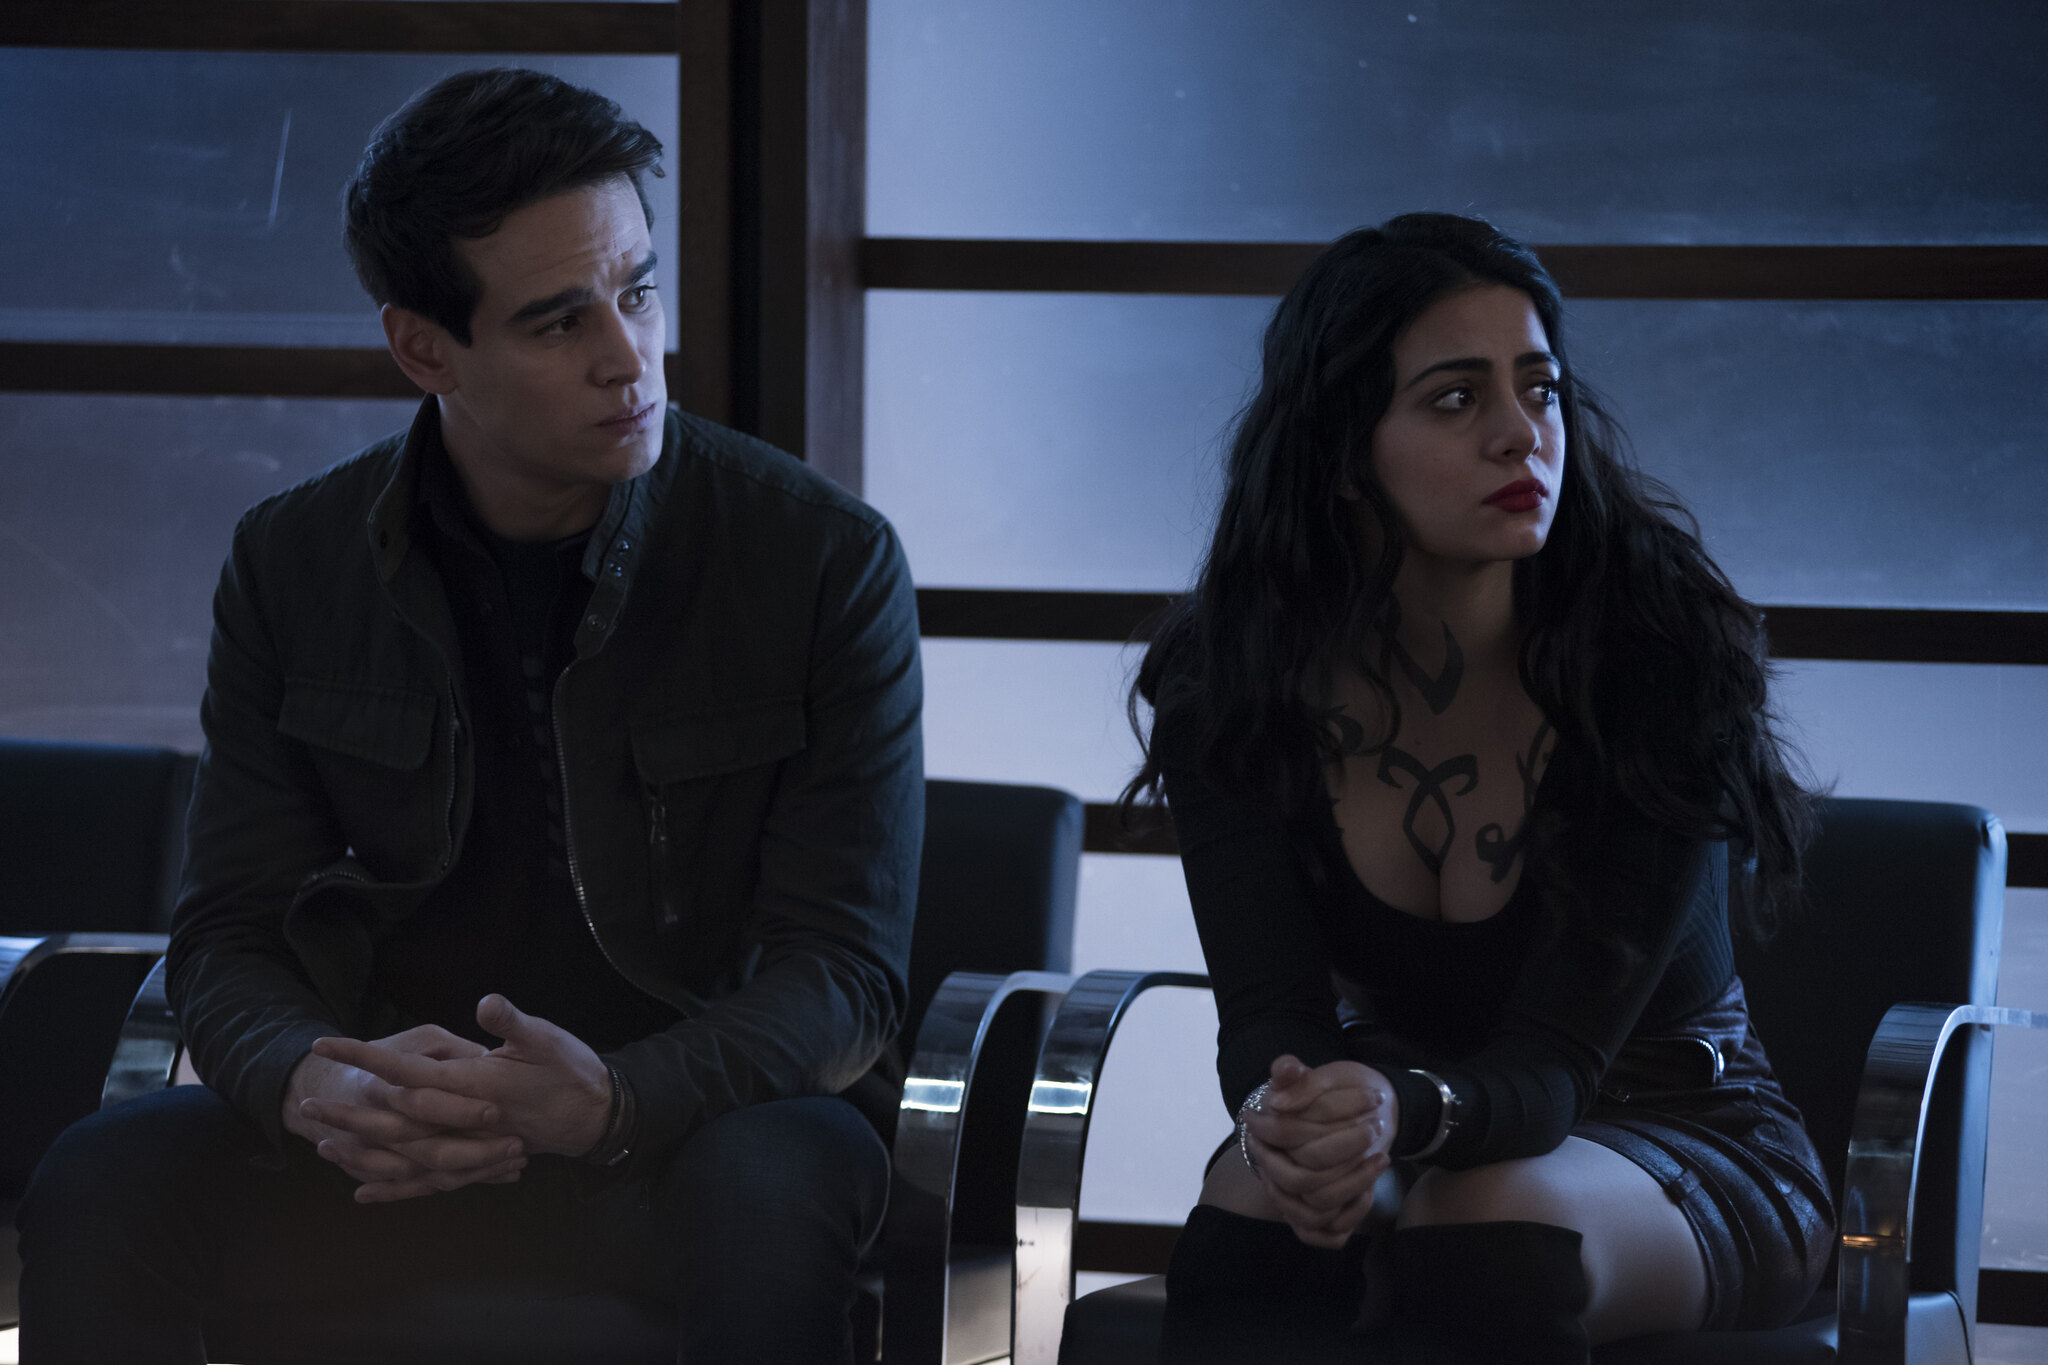 shadowhunters stay with me simon izzy sizzy